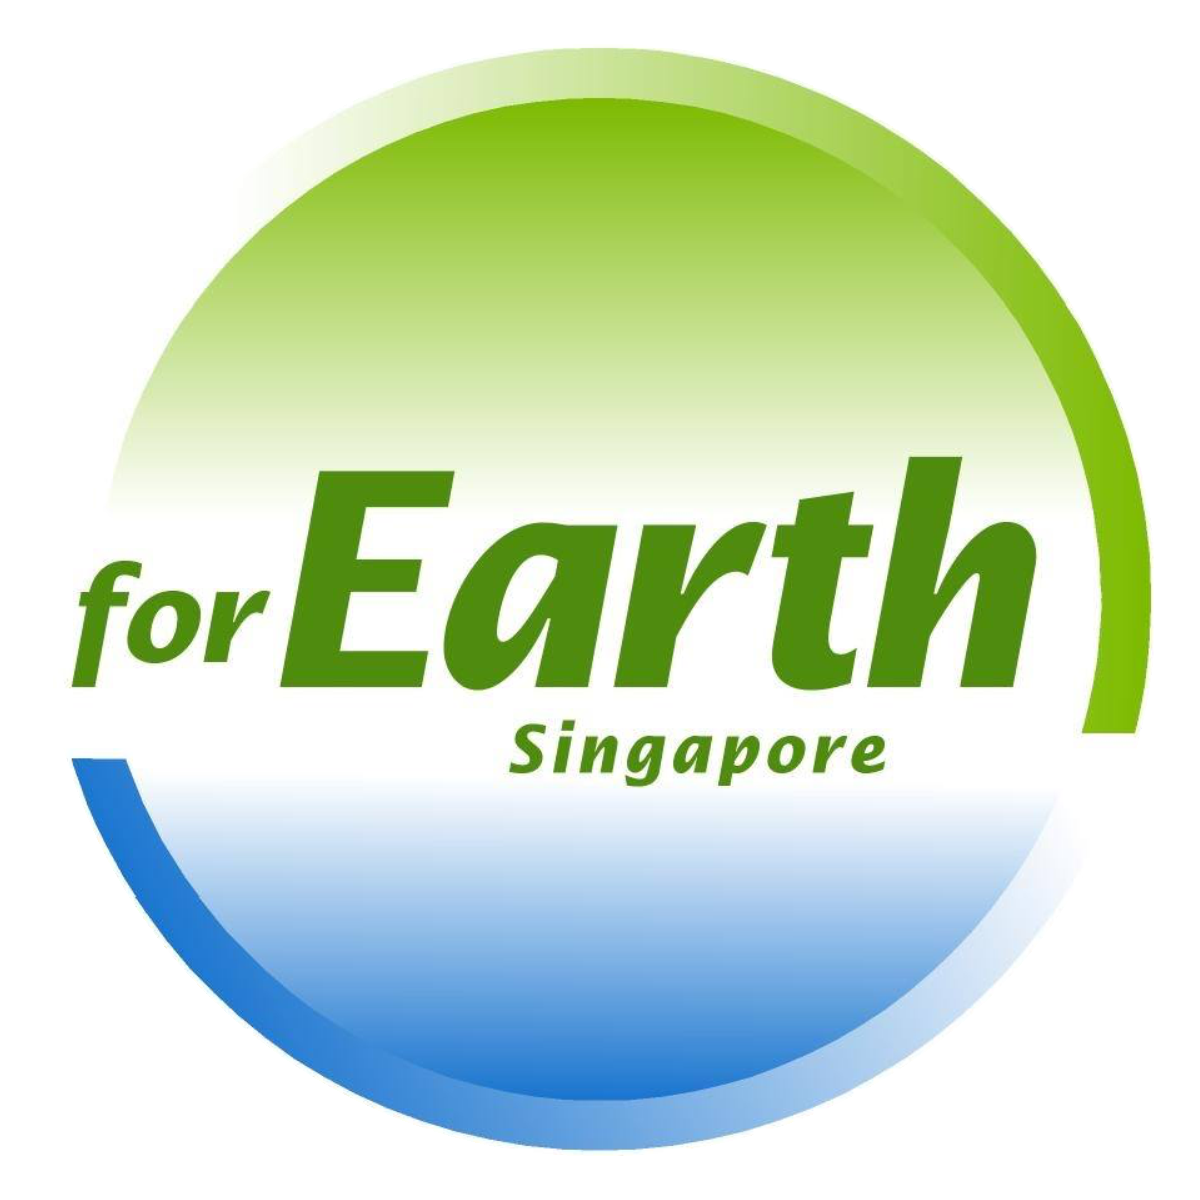 ForEarth Singapore